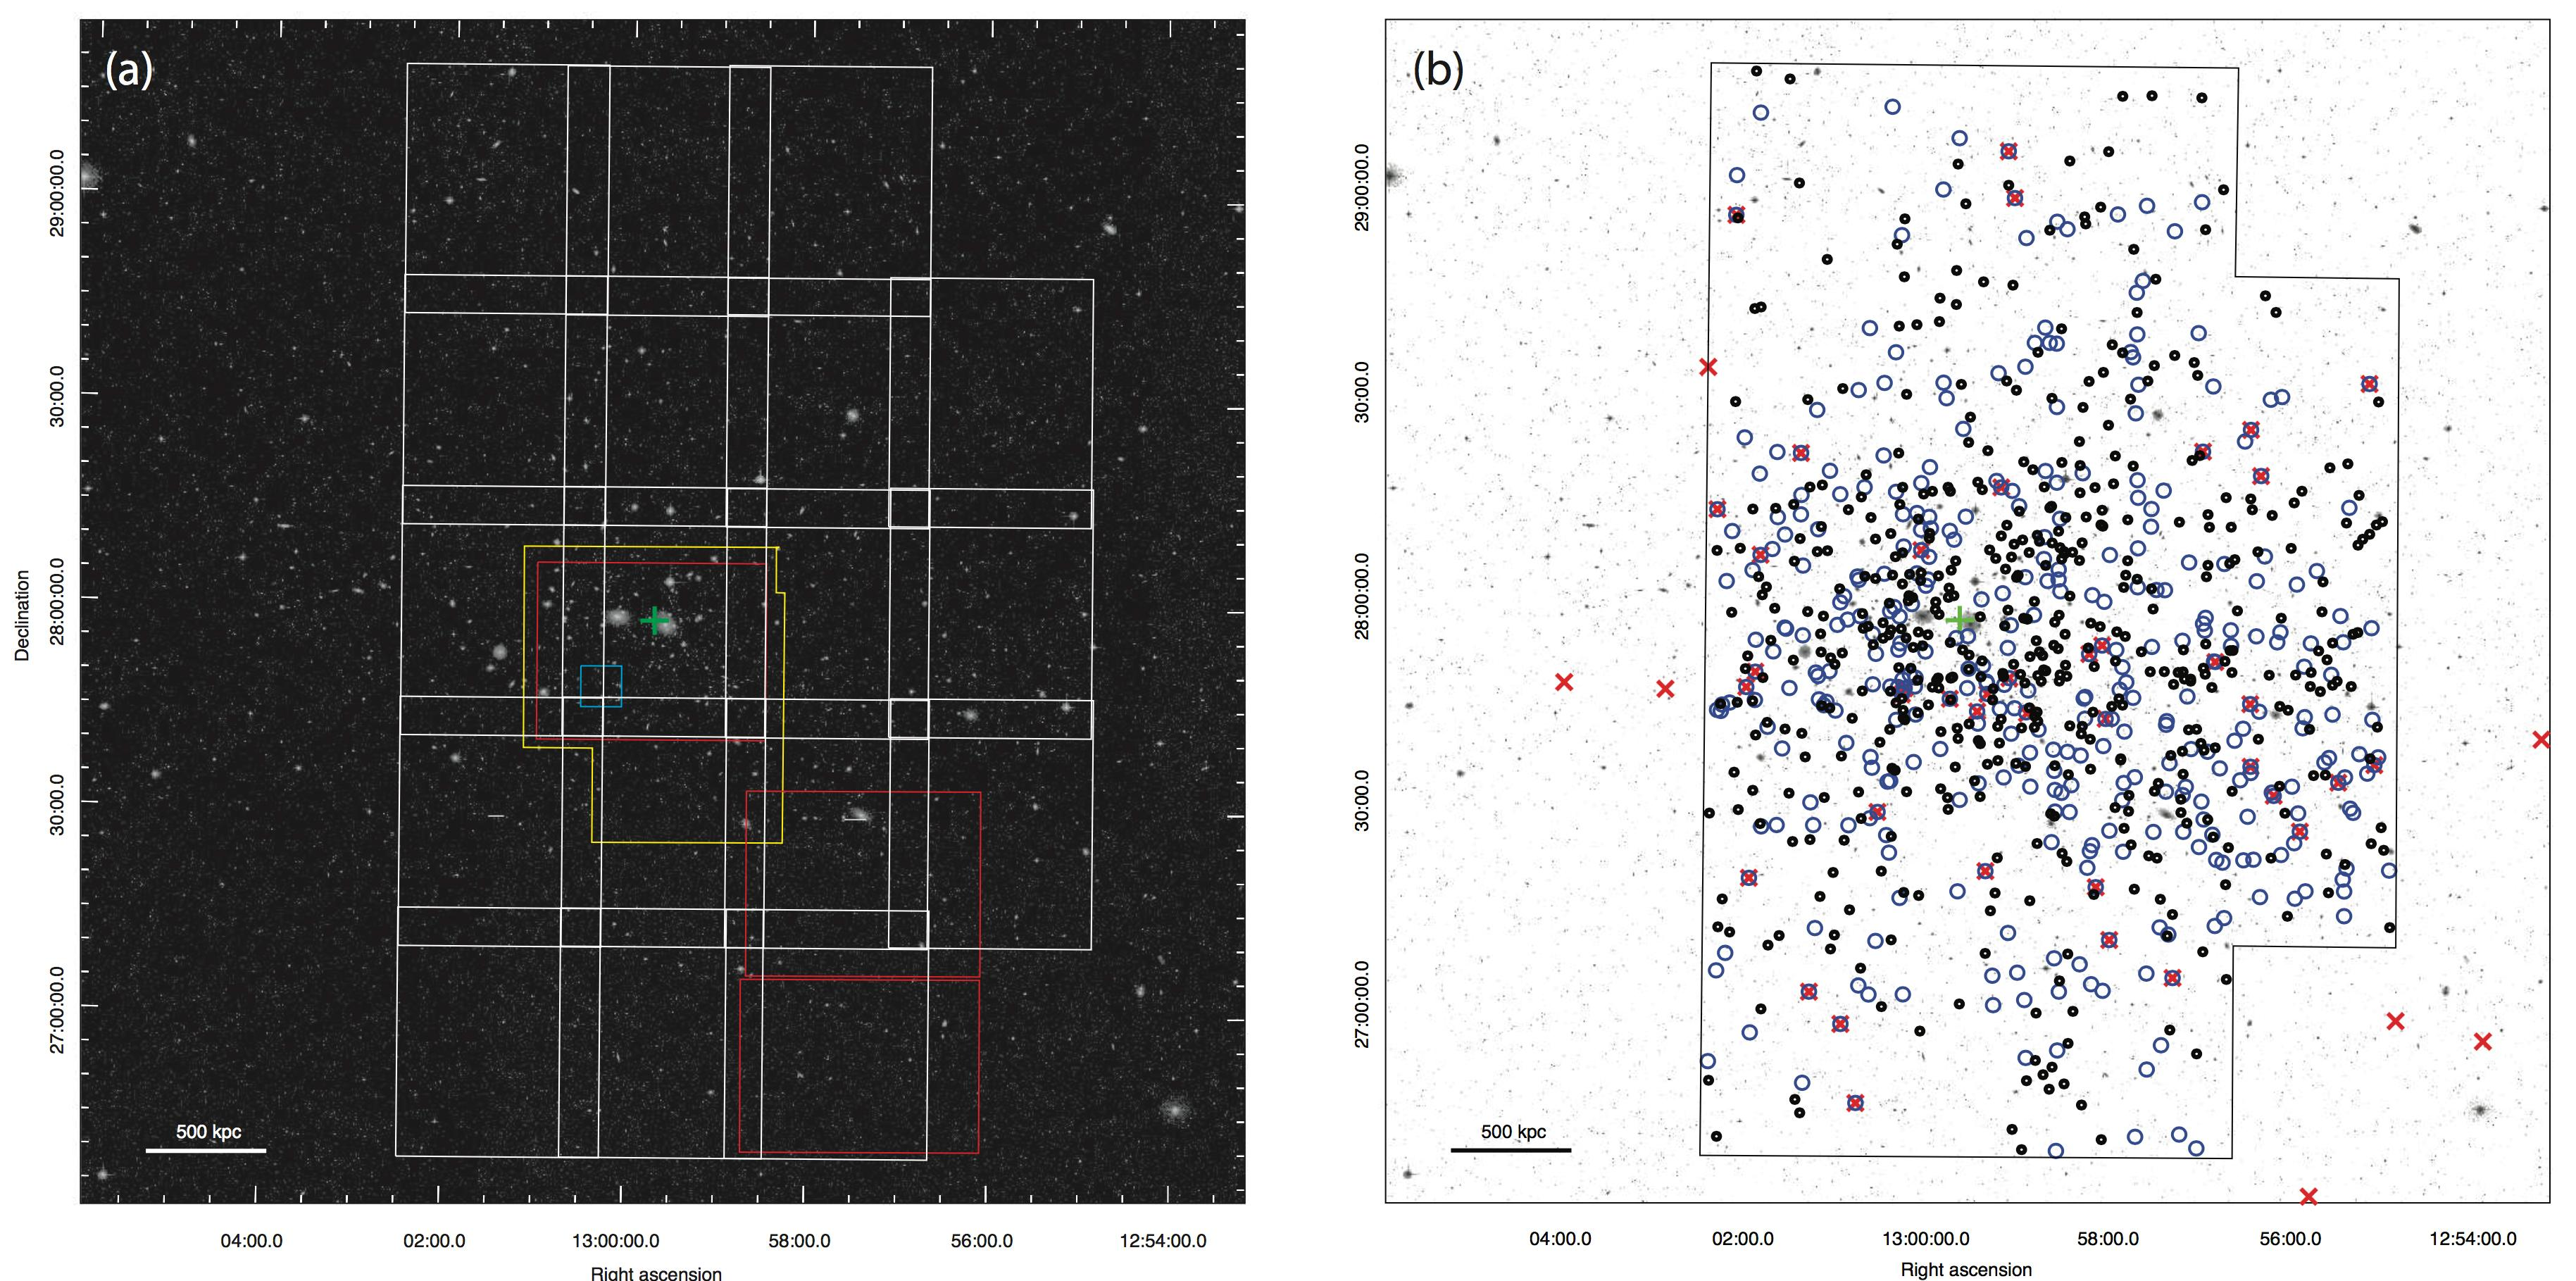 Astronomers Discover More than 800 Dark Galaxies in the Famous Coma Cluster Figure2